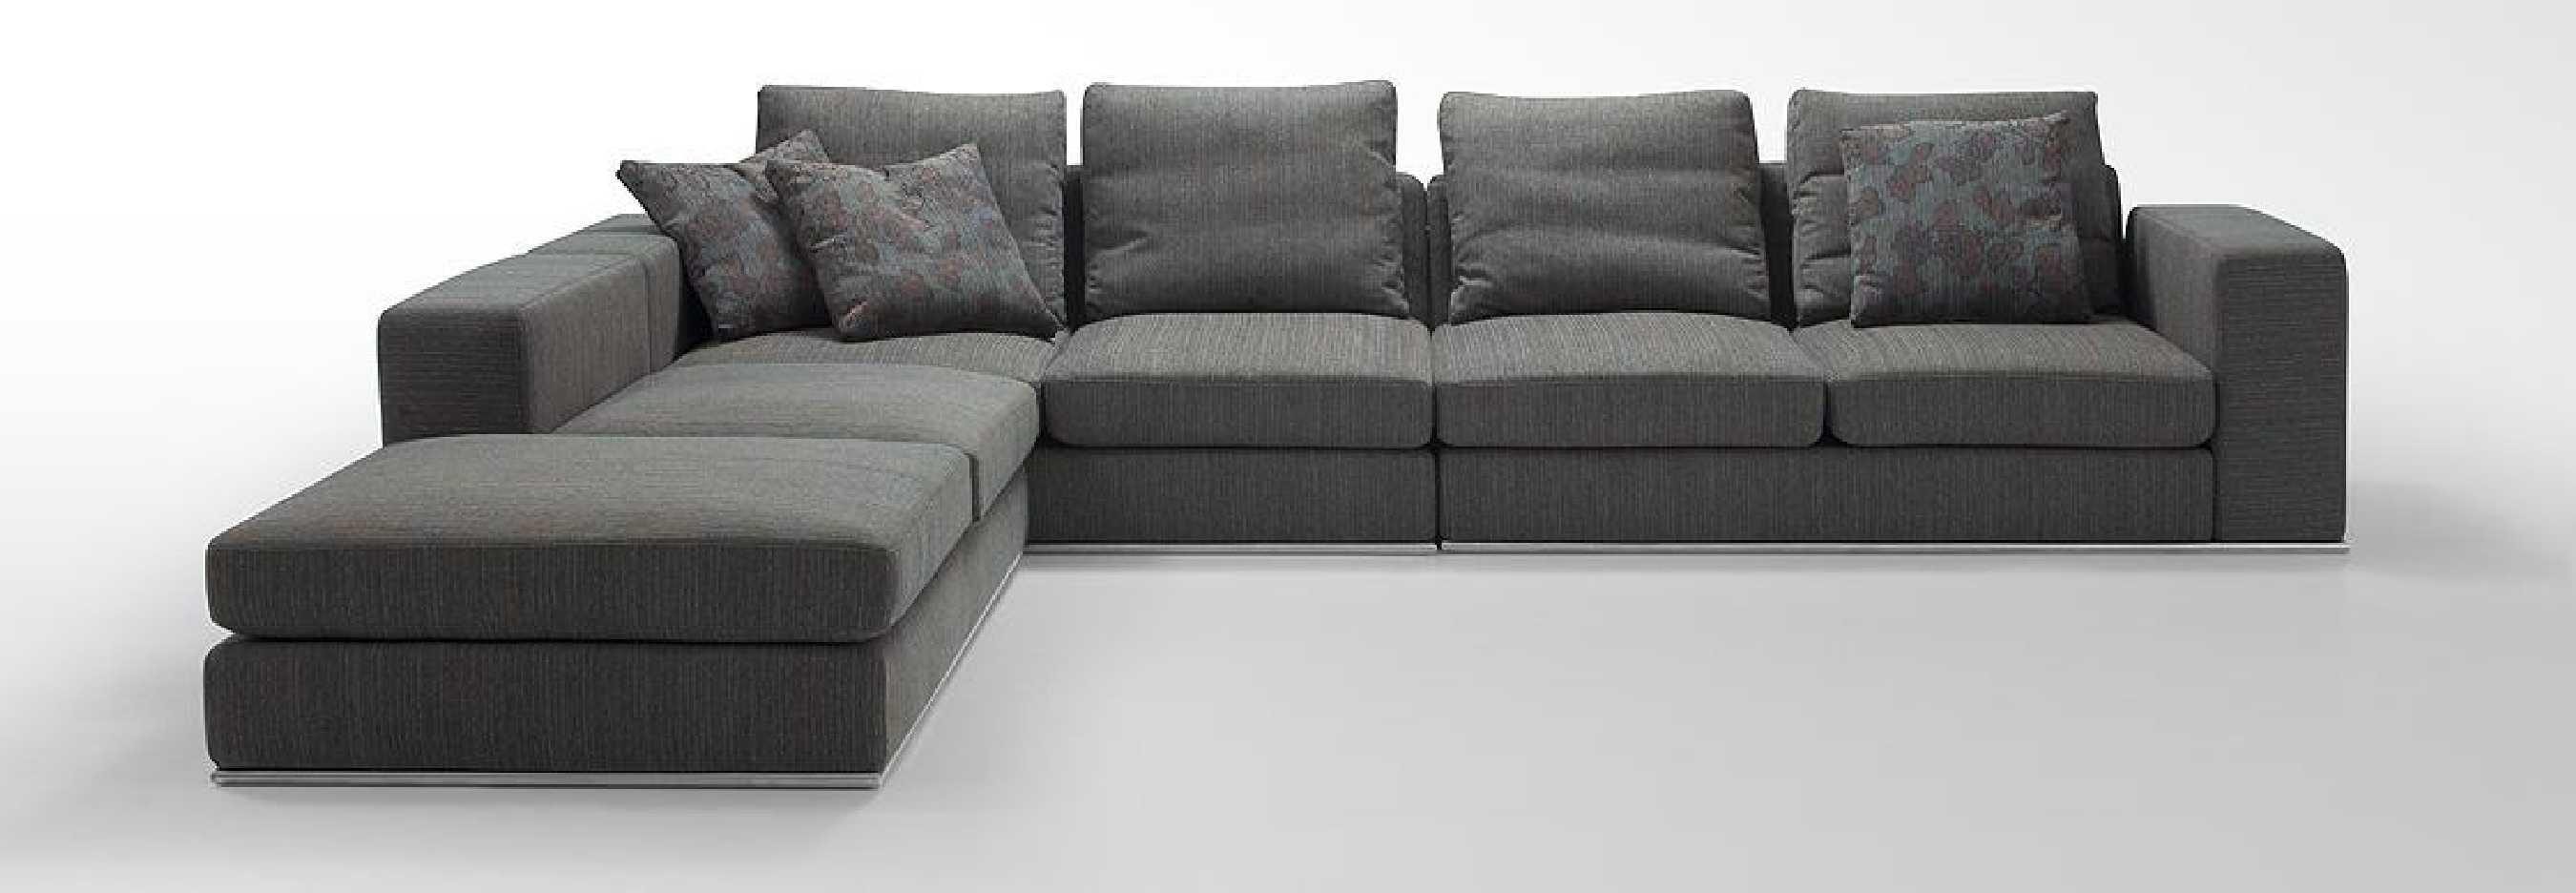 Wonderful Couch L Shape 113 Small L Shaped Sleeper Sofa Best Grey For L Shaped Sectional Sleeper Sofa (View 12 of 20)